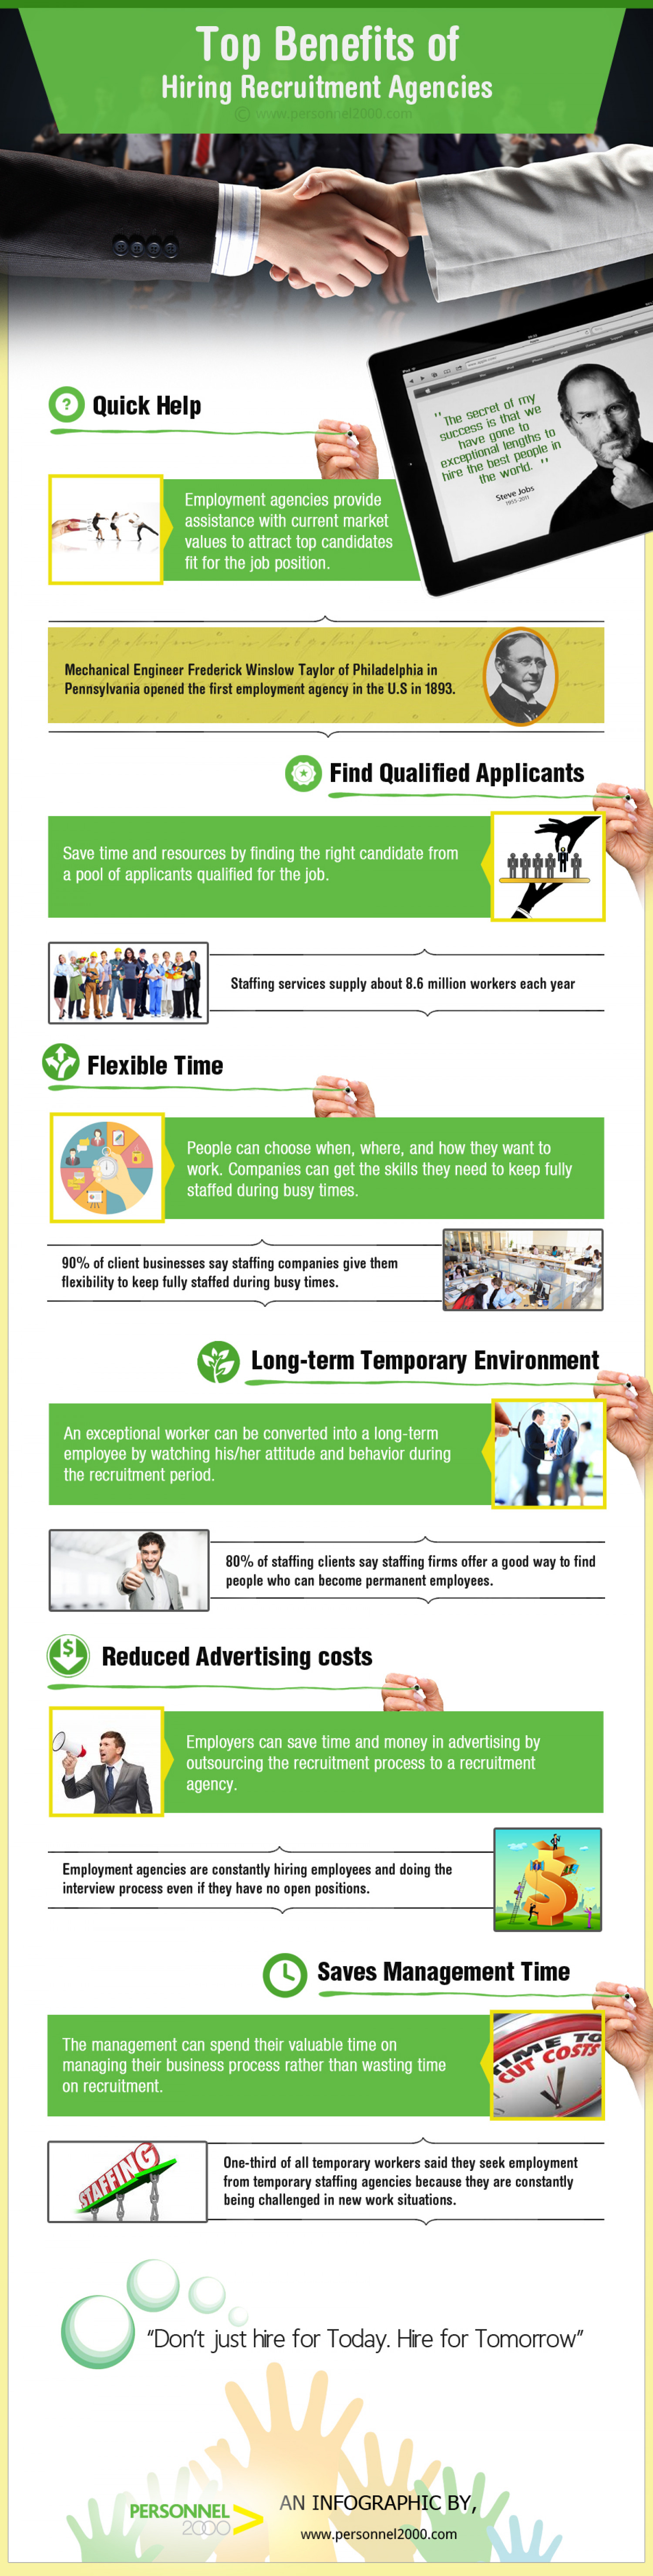 Benefits of Hiring Recruitment Agencies Infographic